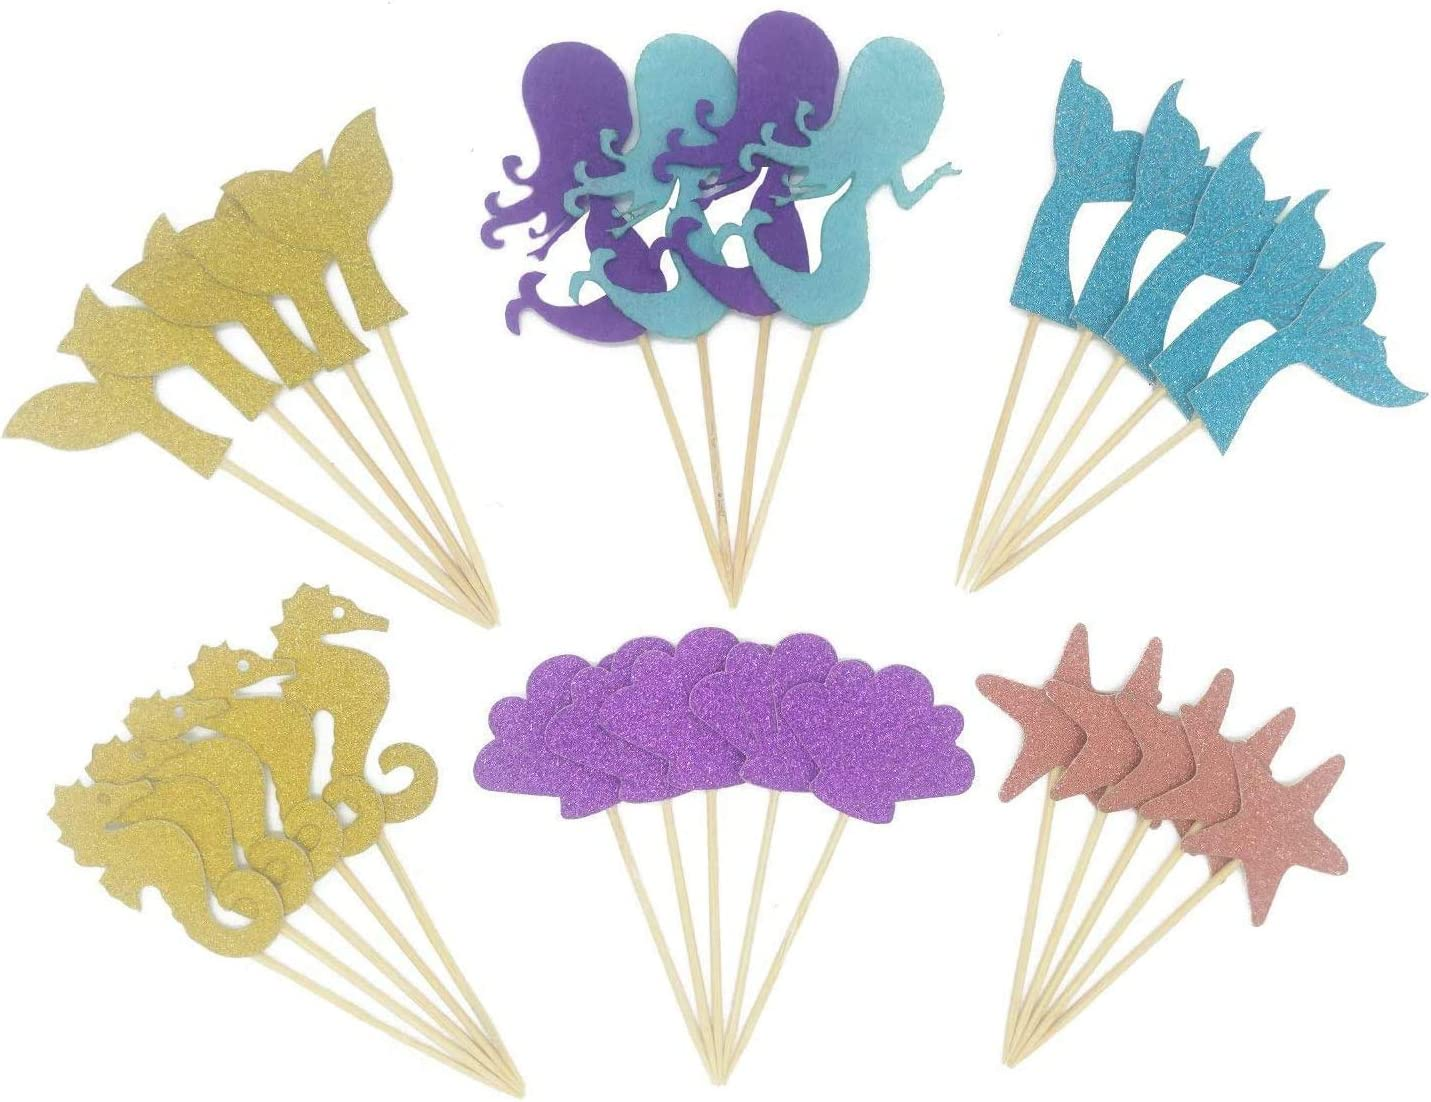 Maydolbone 29pcs glitter mermaid theme cake toppers- birthday or baby bath food picks decoration and cake party, ncluding mermaid, shell, fishtail, starfish, hippocampus